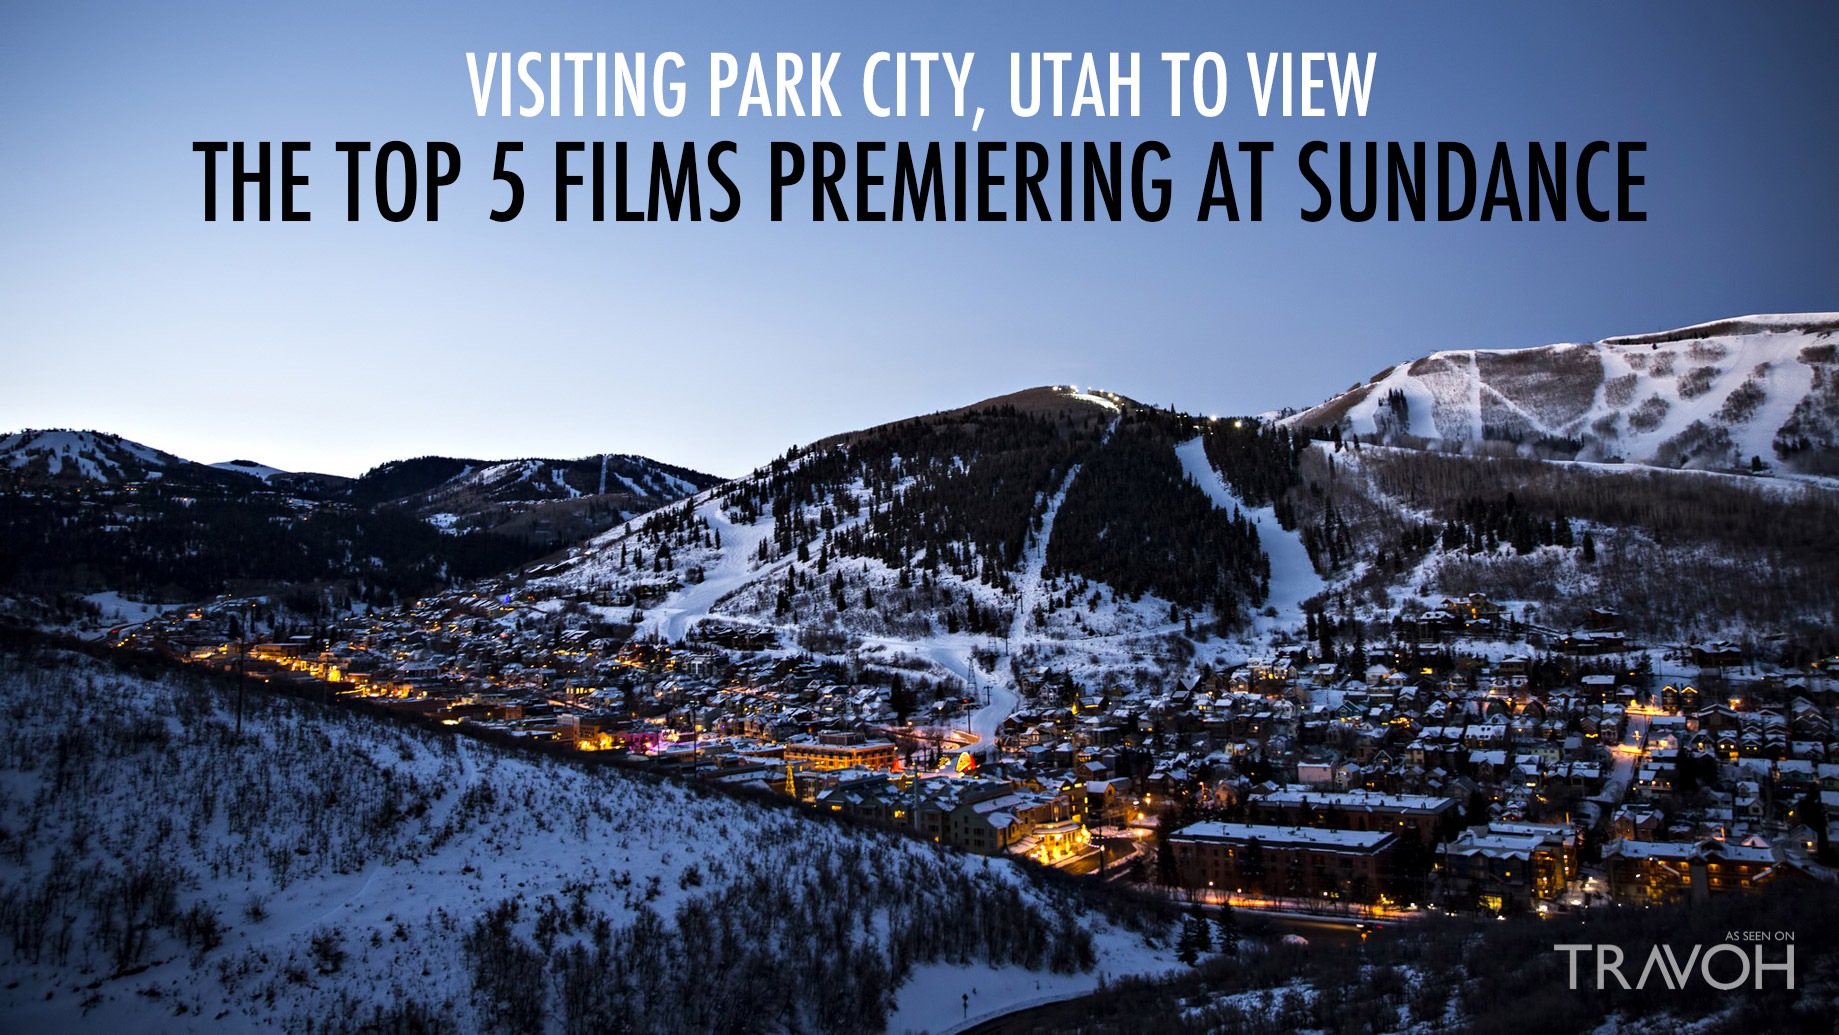 Visiting Park City, Utah to View the Top 5 Films Premiering at Sundance